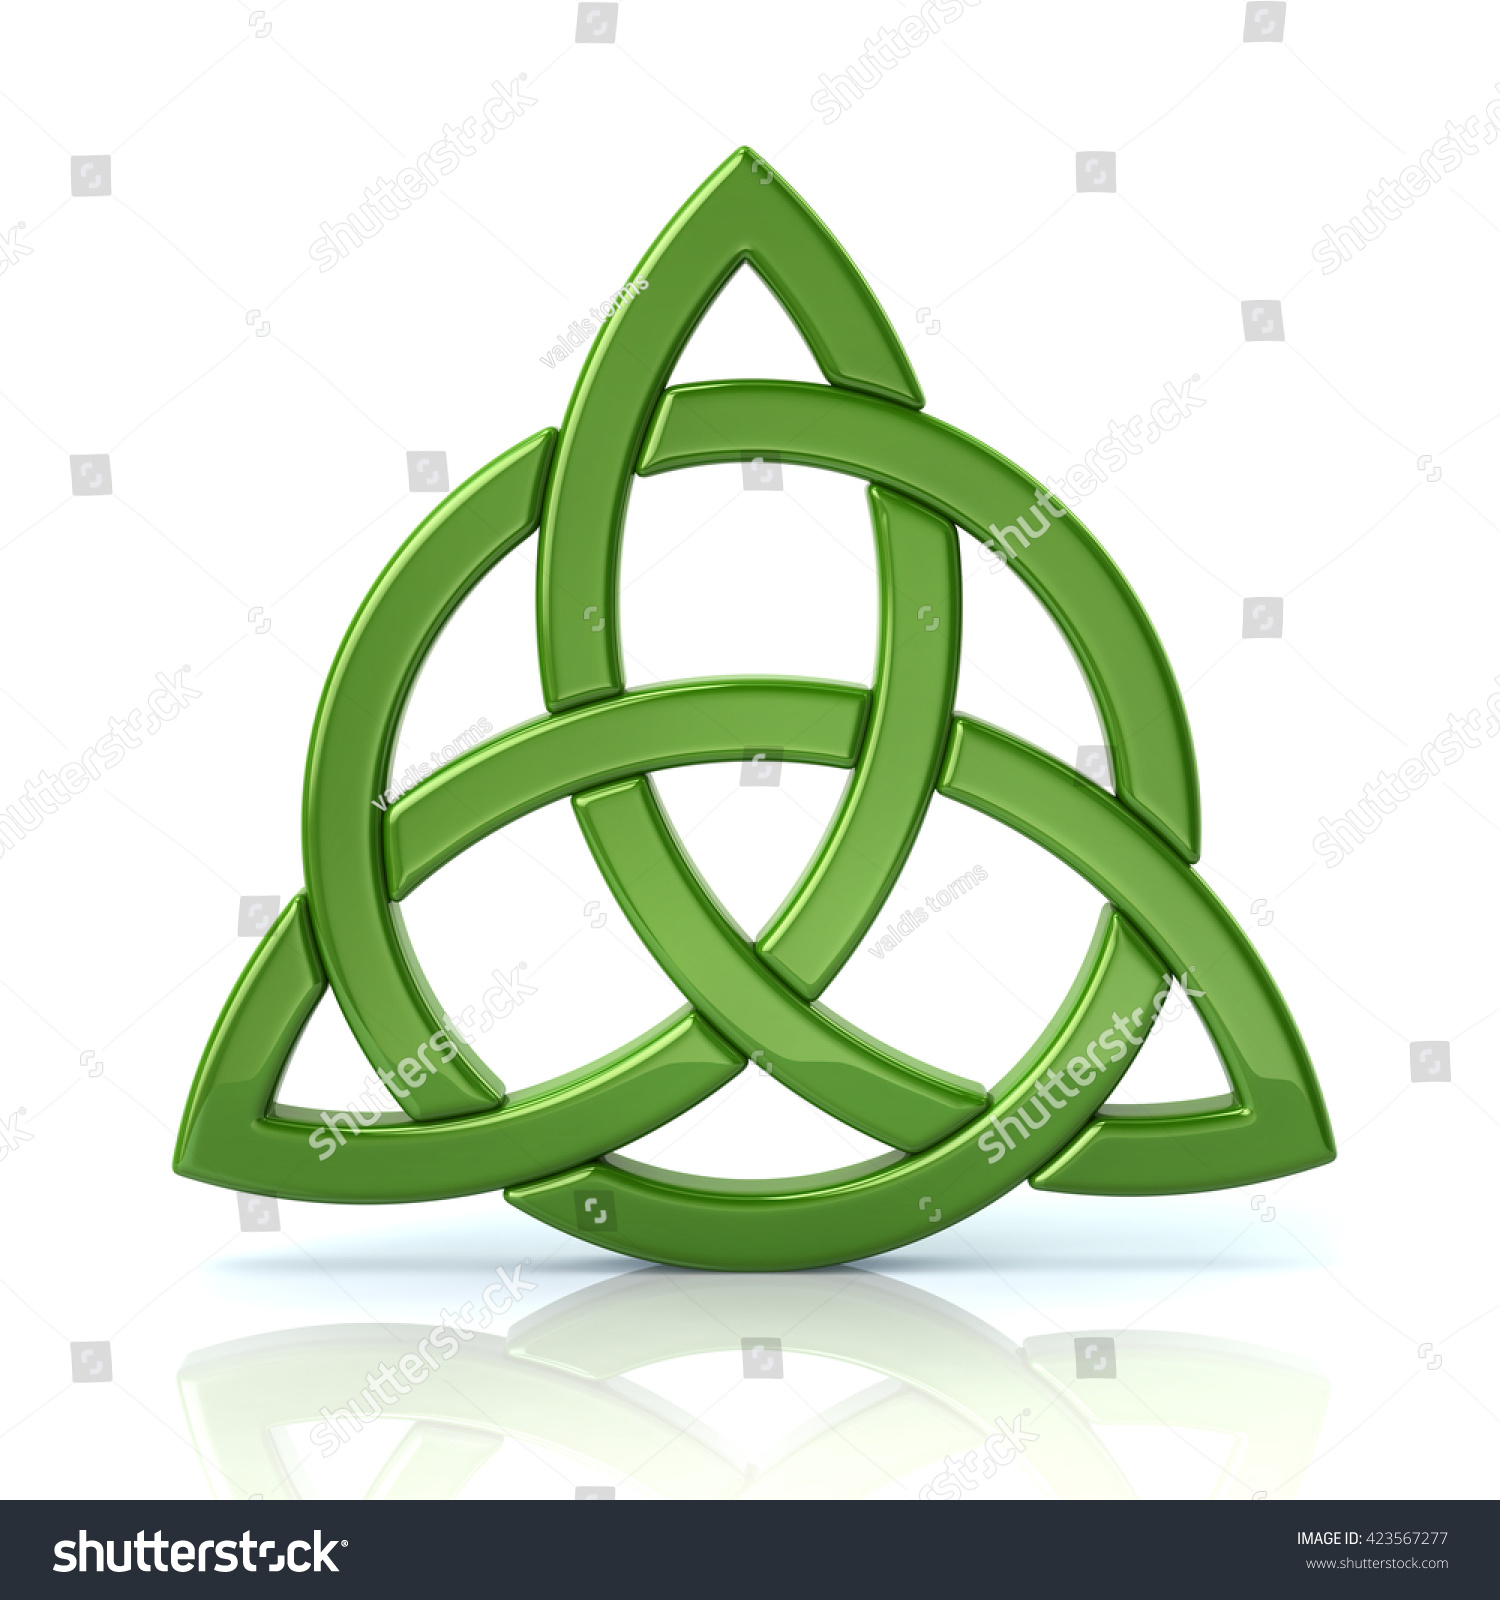 Green Celtic Trinity Knot Isolated On White Background Ez Canvas